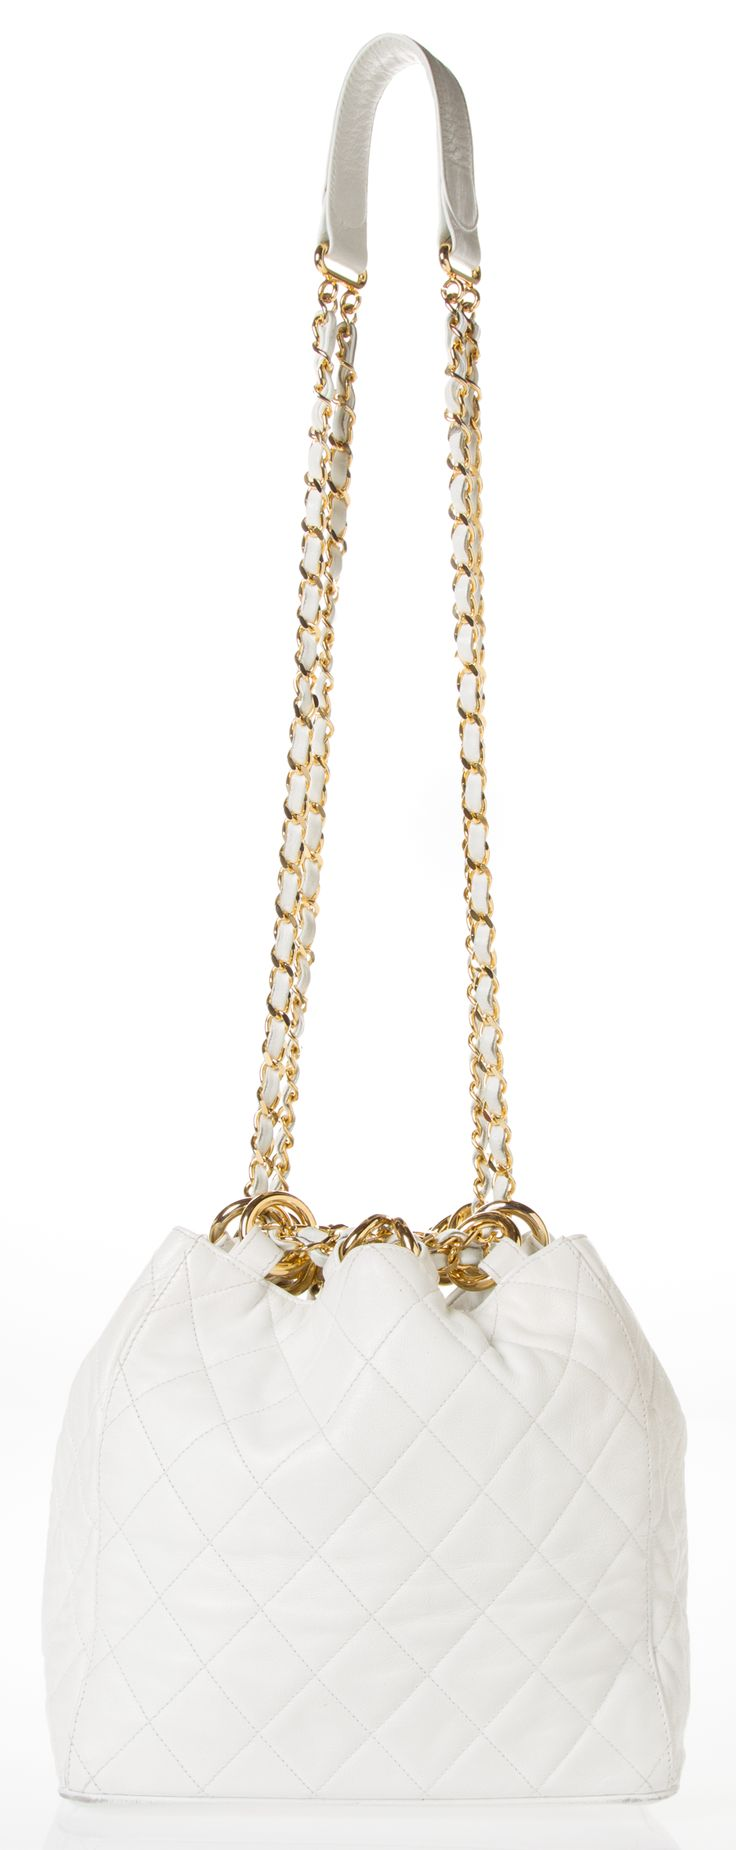 Chanel ~ White Quilted Leather Shoulder Bag w Gold Tone Chain